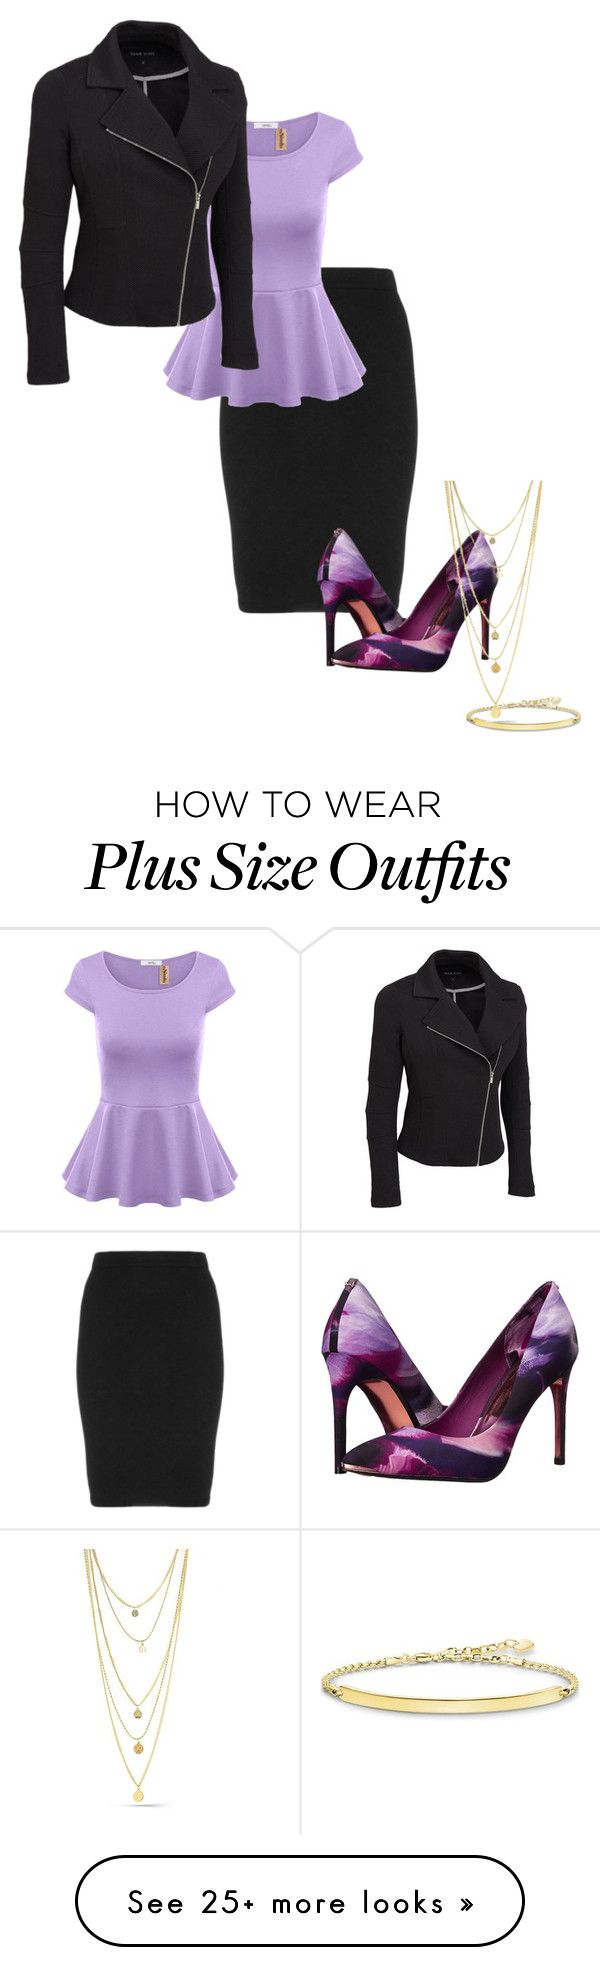 """""""Lil"""" by lavinia-goddard on Polyvore featuring Manon Baptiste, Ted Baker, Thomas Sabo, styling and plus size clothing"""